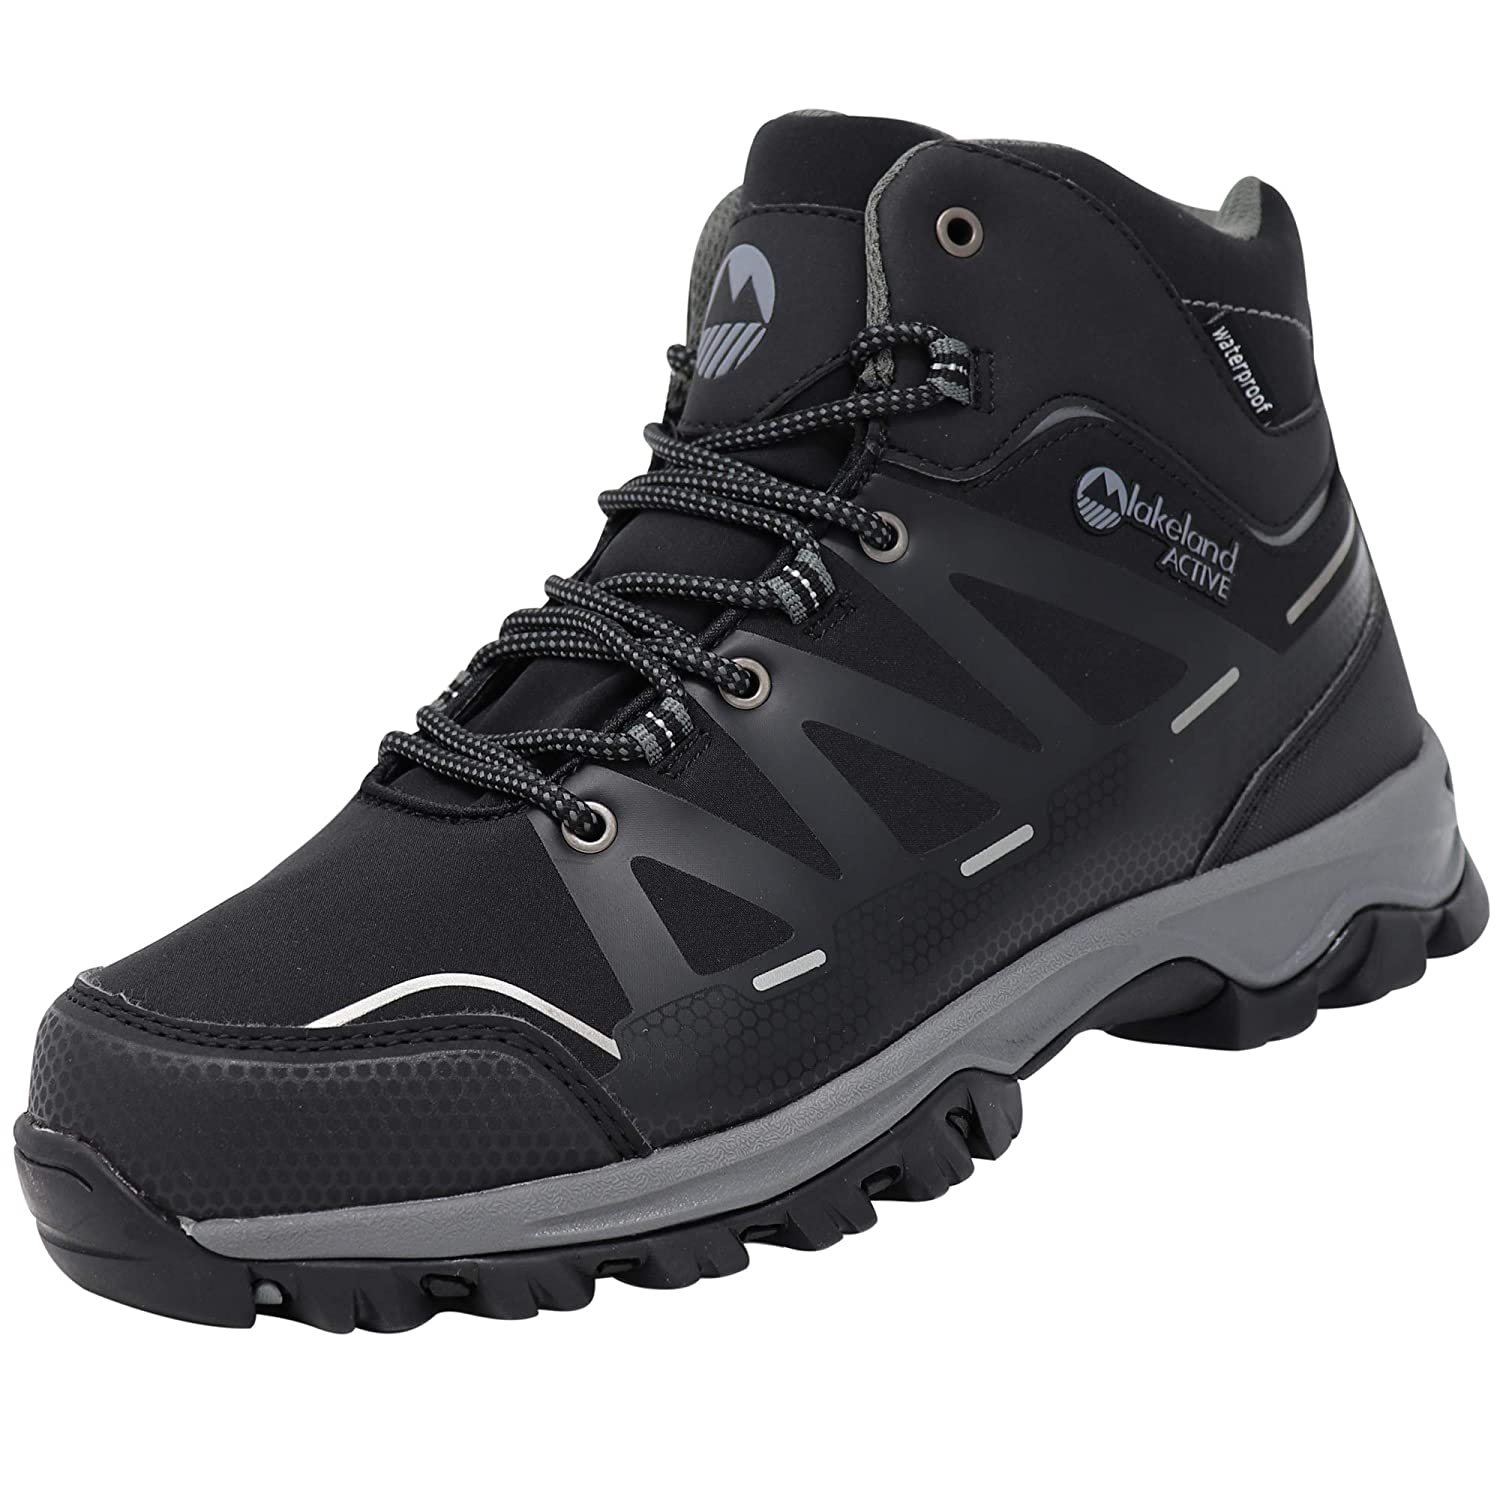 f2a1ececad3 Lakeland Active Grizedale Mid Men's Waterproof Hiking Boots